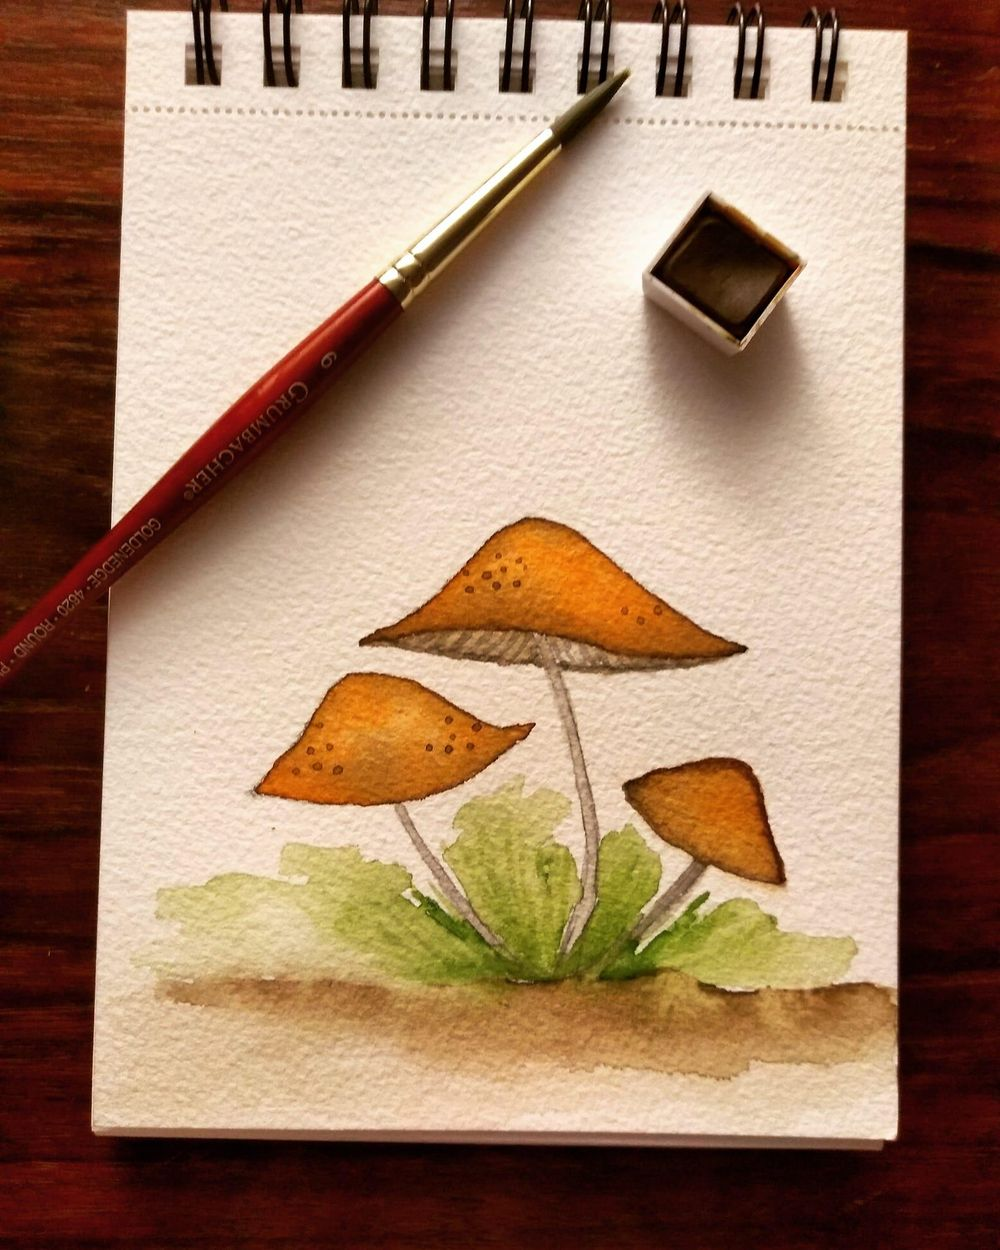 Shrooms - image 1 - student project